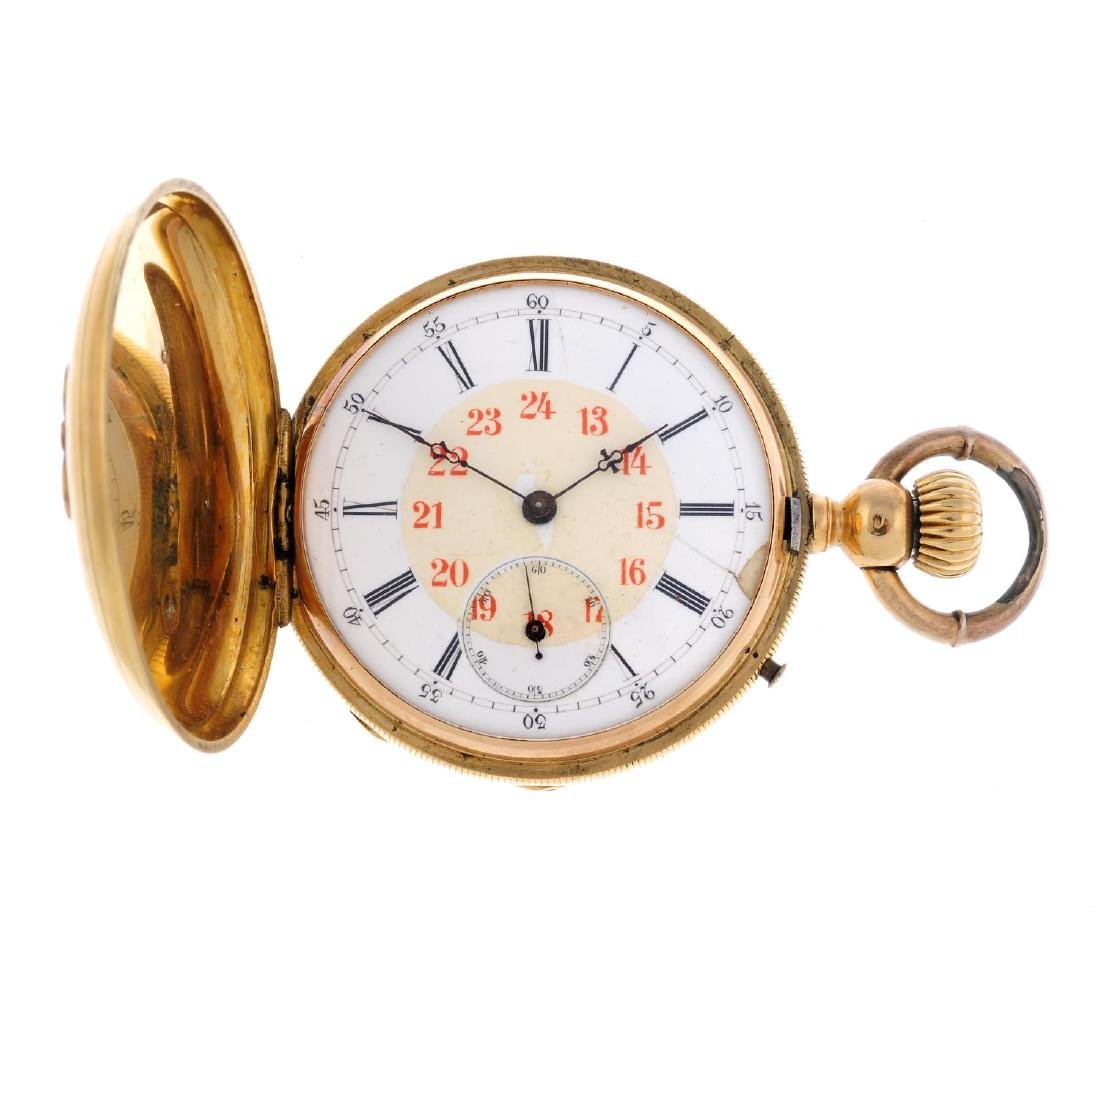 A full hunter pocket watch. Yellow metal case, stamped